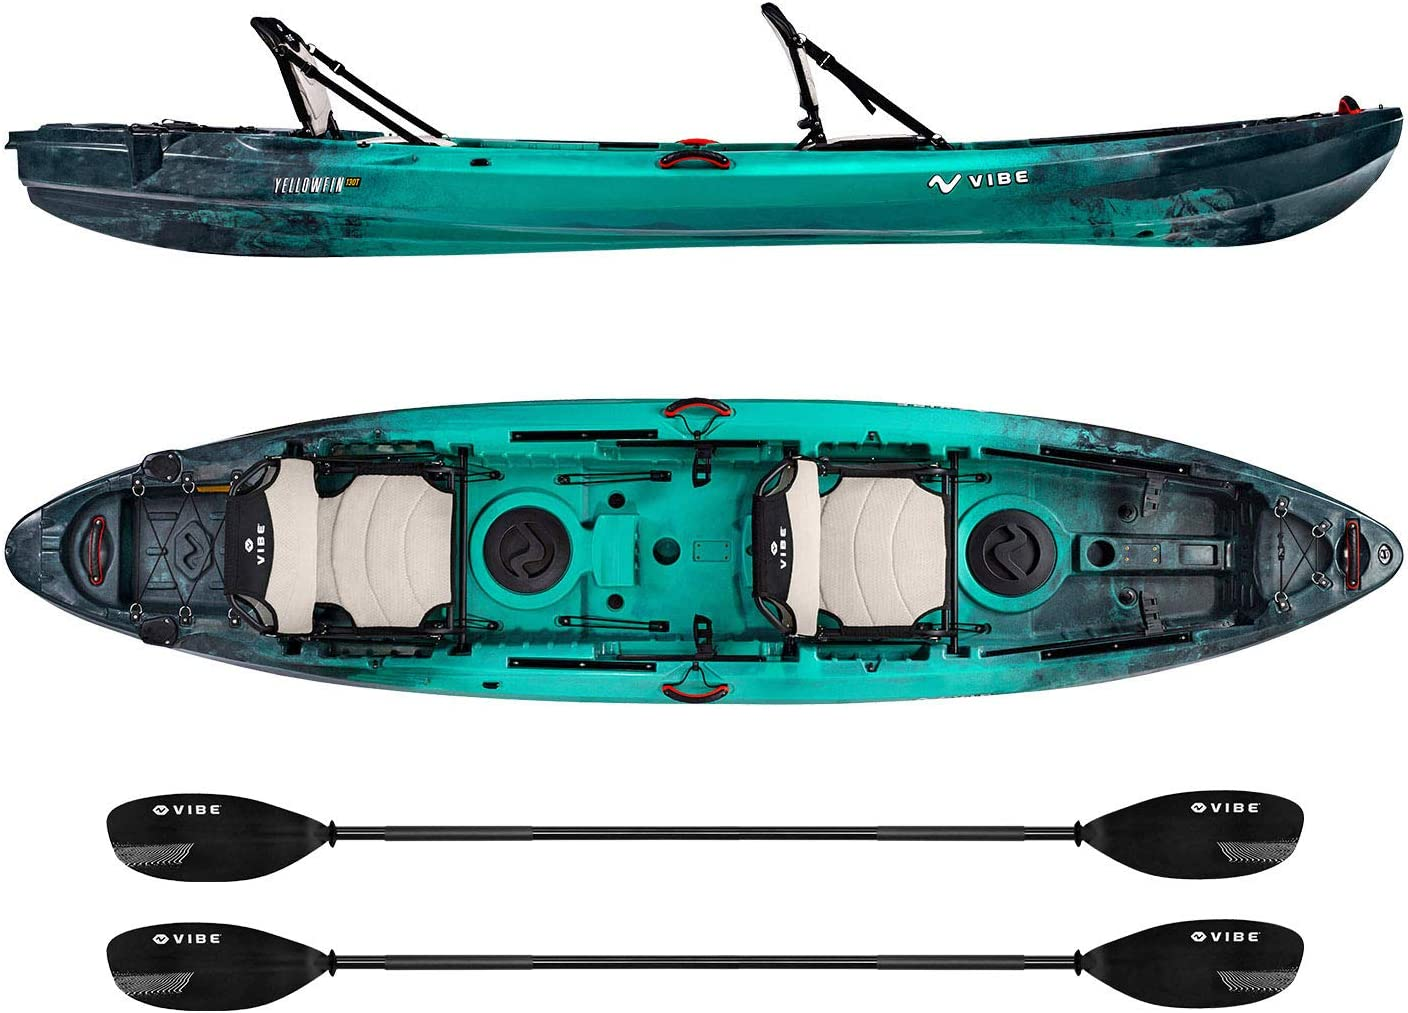 Where Are Vibe Kayaks Made?